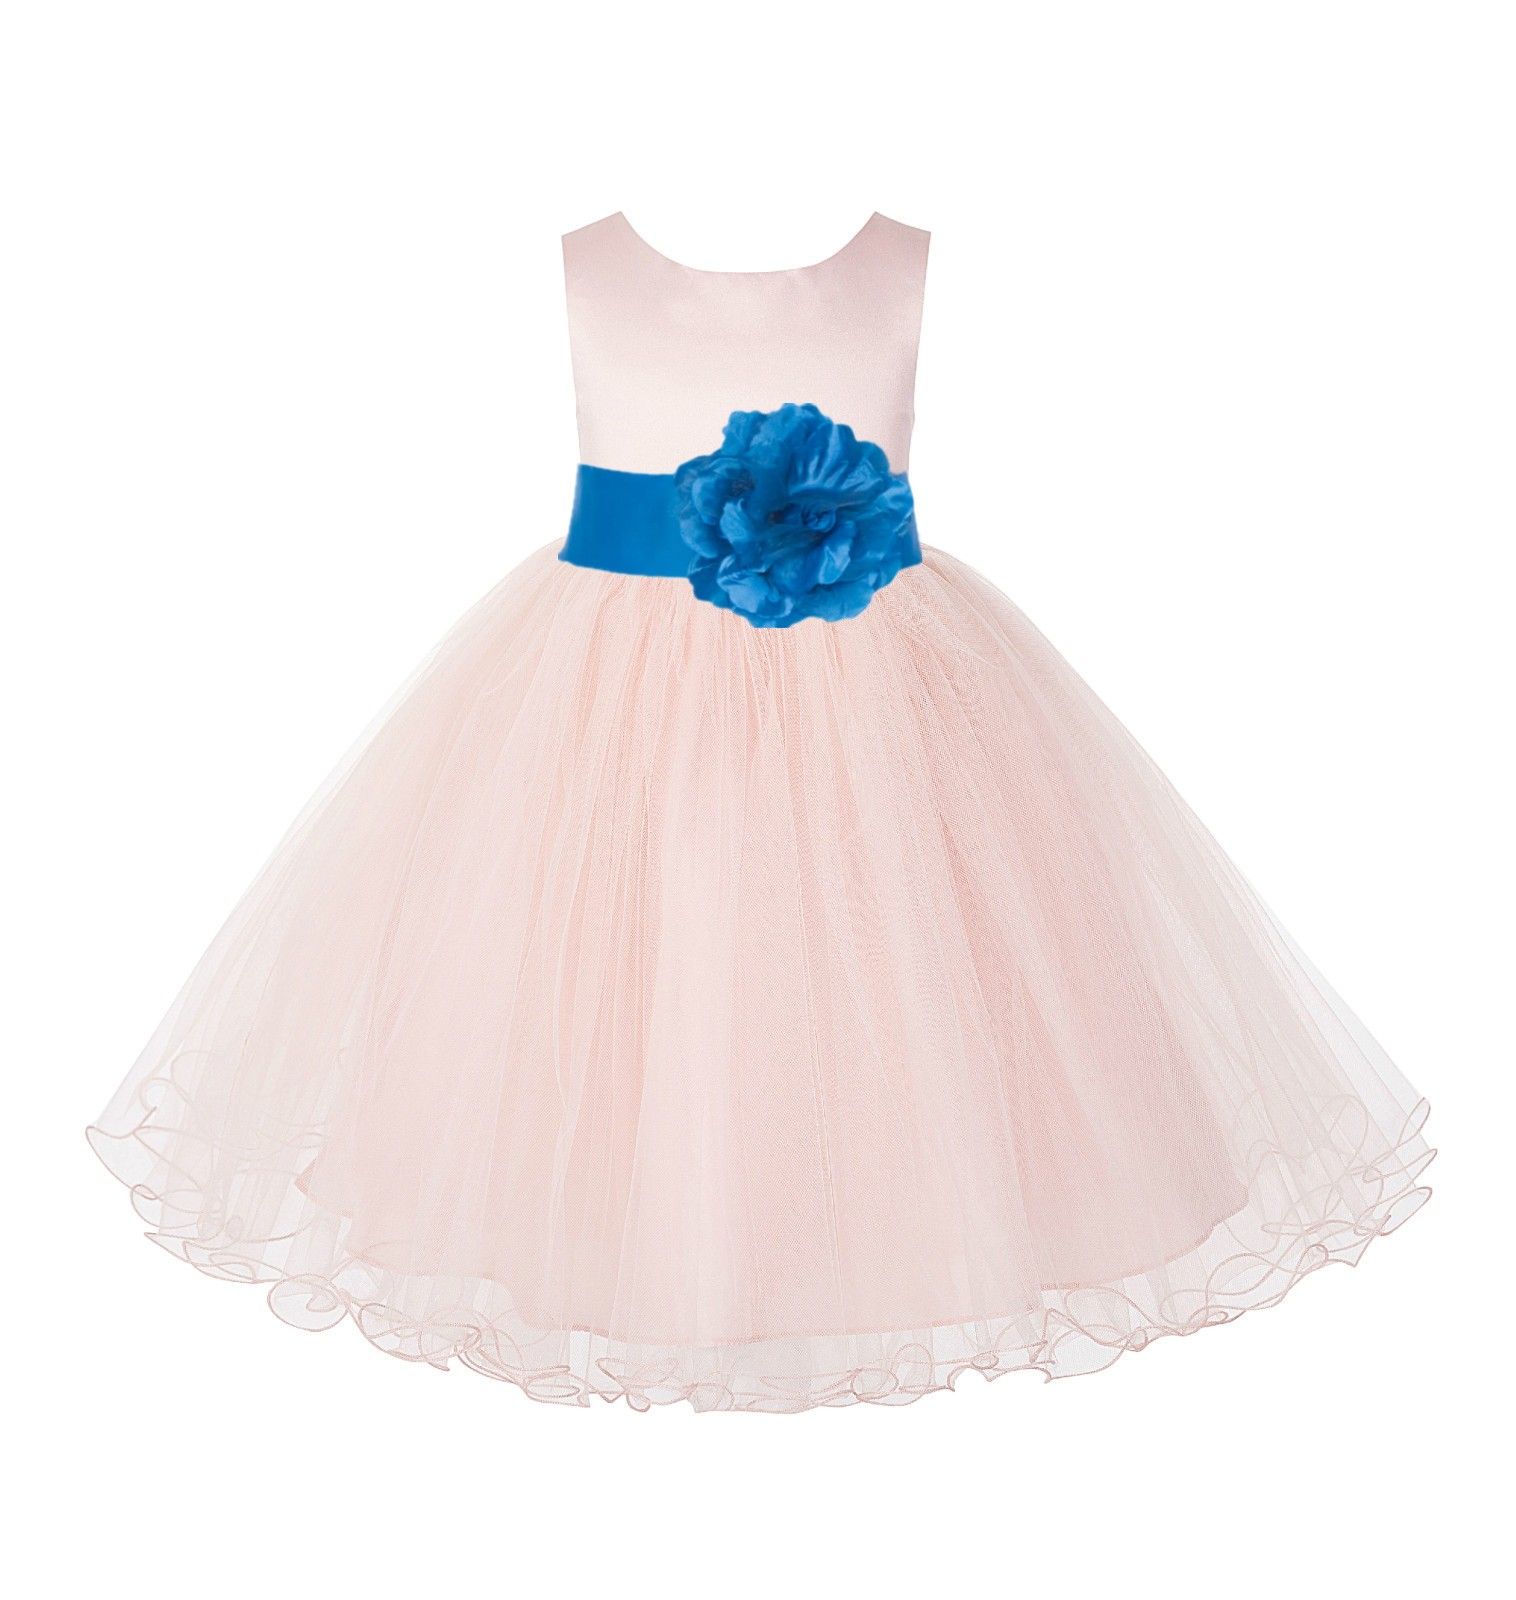 Blush Pink / MalibuTulle Rattail Edge Flower Girl Dress Pageant Recital 829S